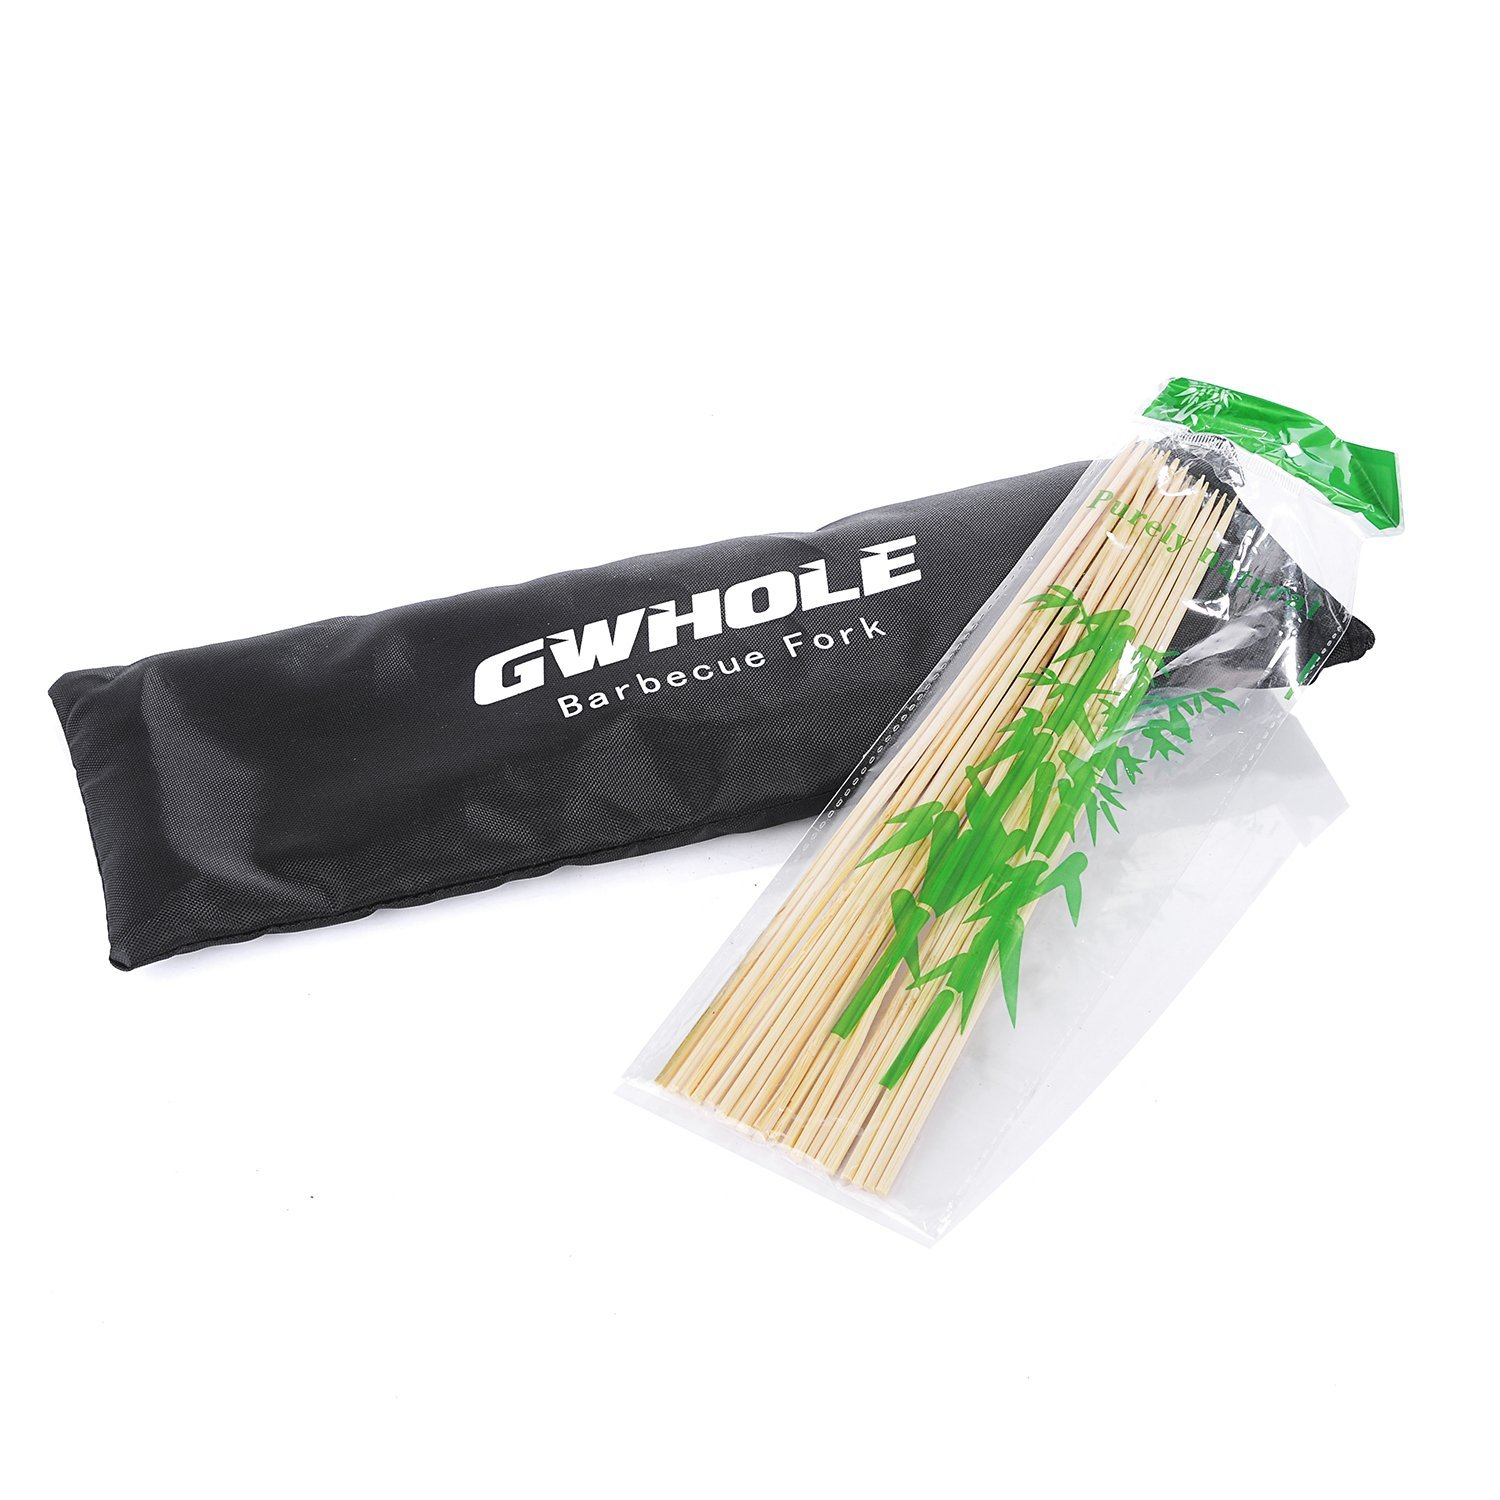 GWHOLE Marshmallow Roasting Sticks,32 Inches Telescoping Smores Skewers for Hotdog Camping Set of 8